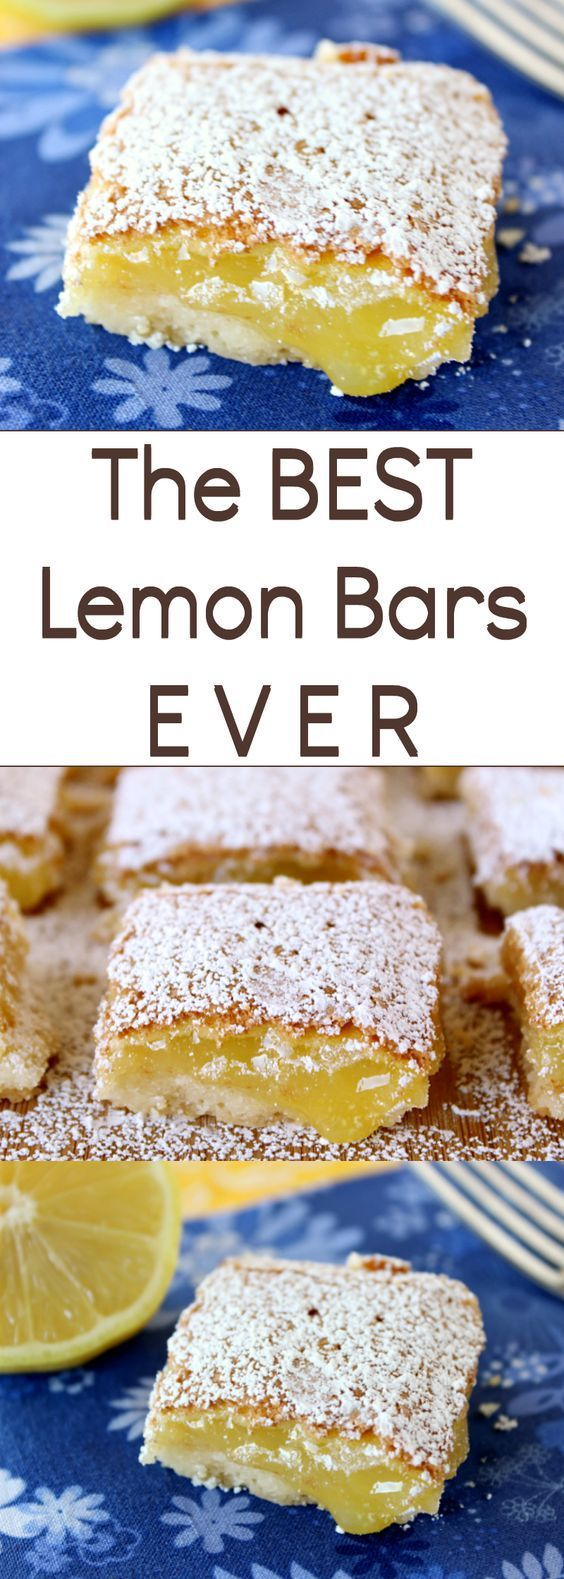 The BEST Lemon Bars EVER | Best Lemon Bars, Lemon Bars and Welcome ...